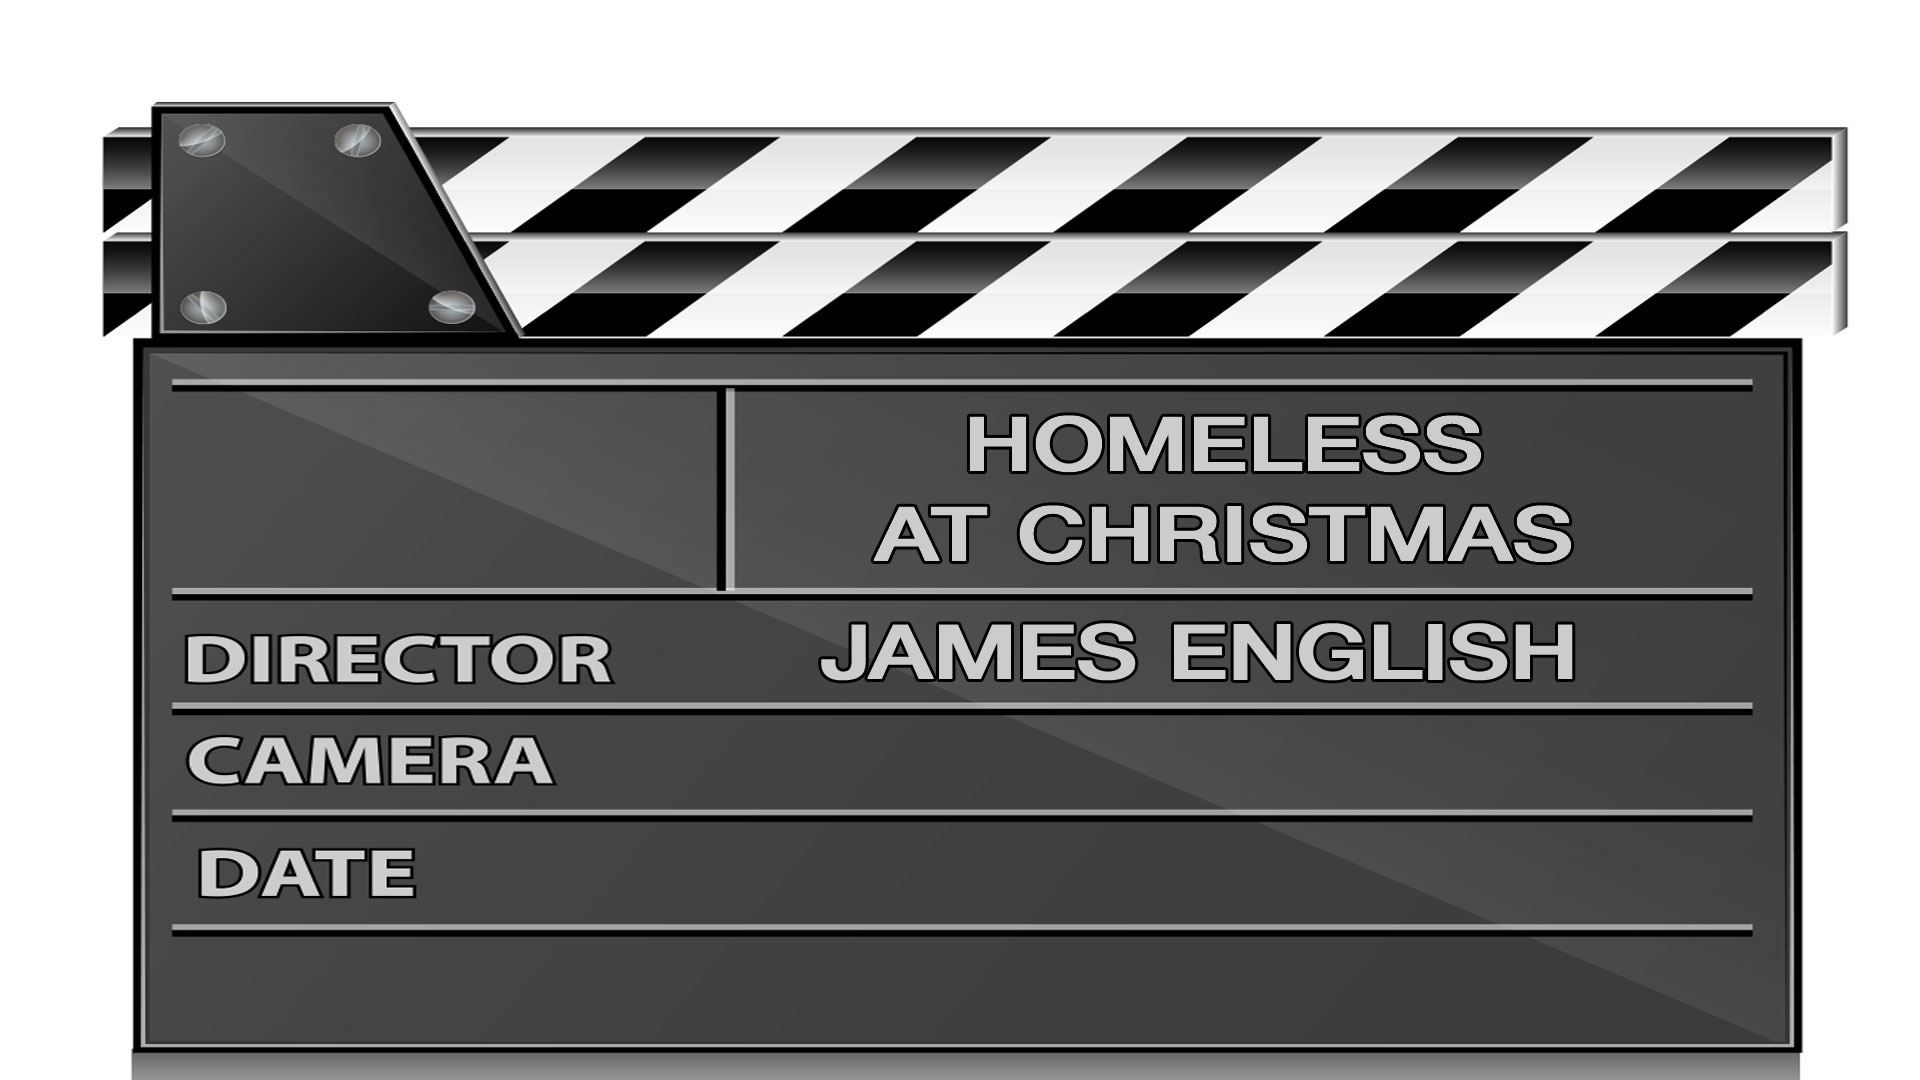 James English's documentary now on Prime